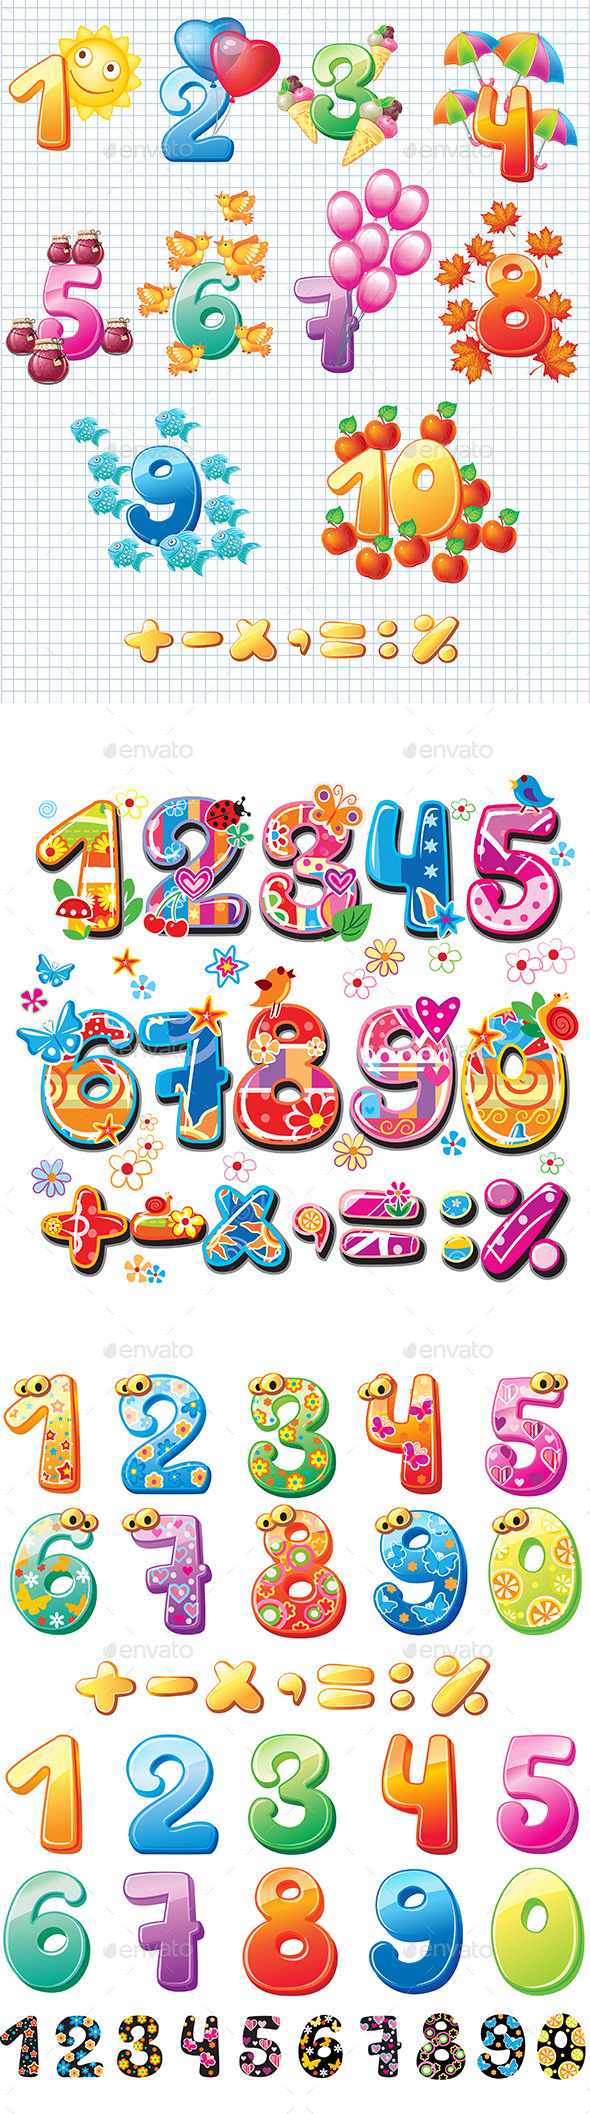 Colorful Numbers for Children - Decorative Symbols Decorative